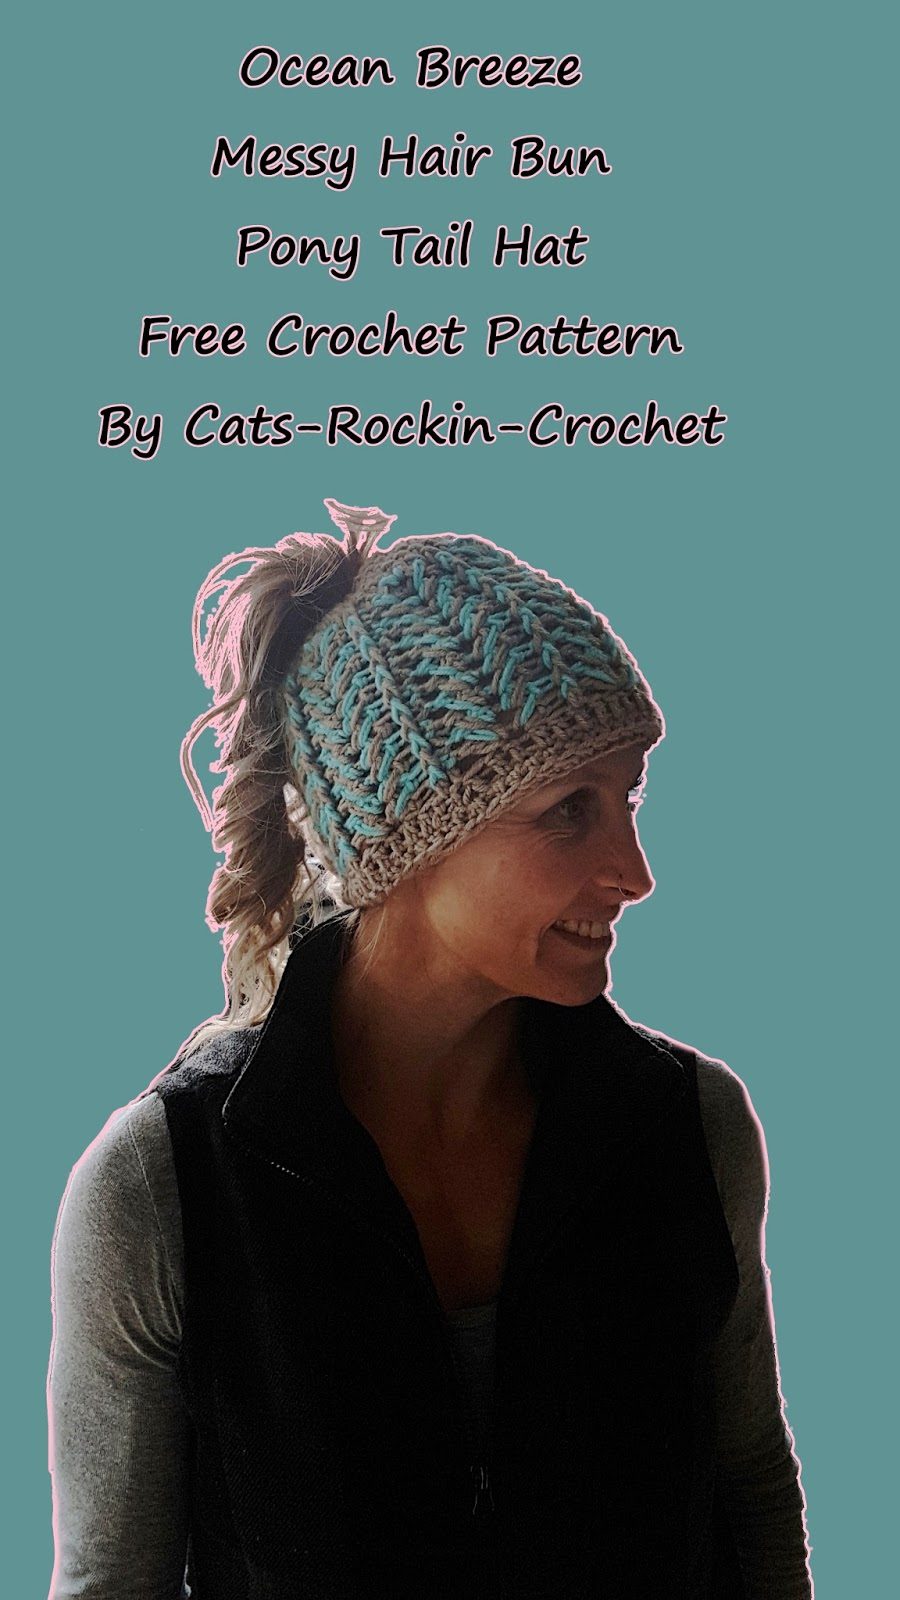 Free Crochet Patterns By Cats-Rockin-Crochet aa994ba36a4